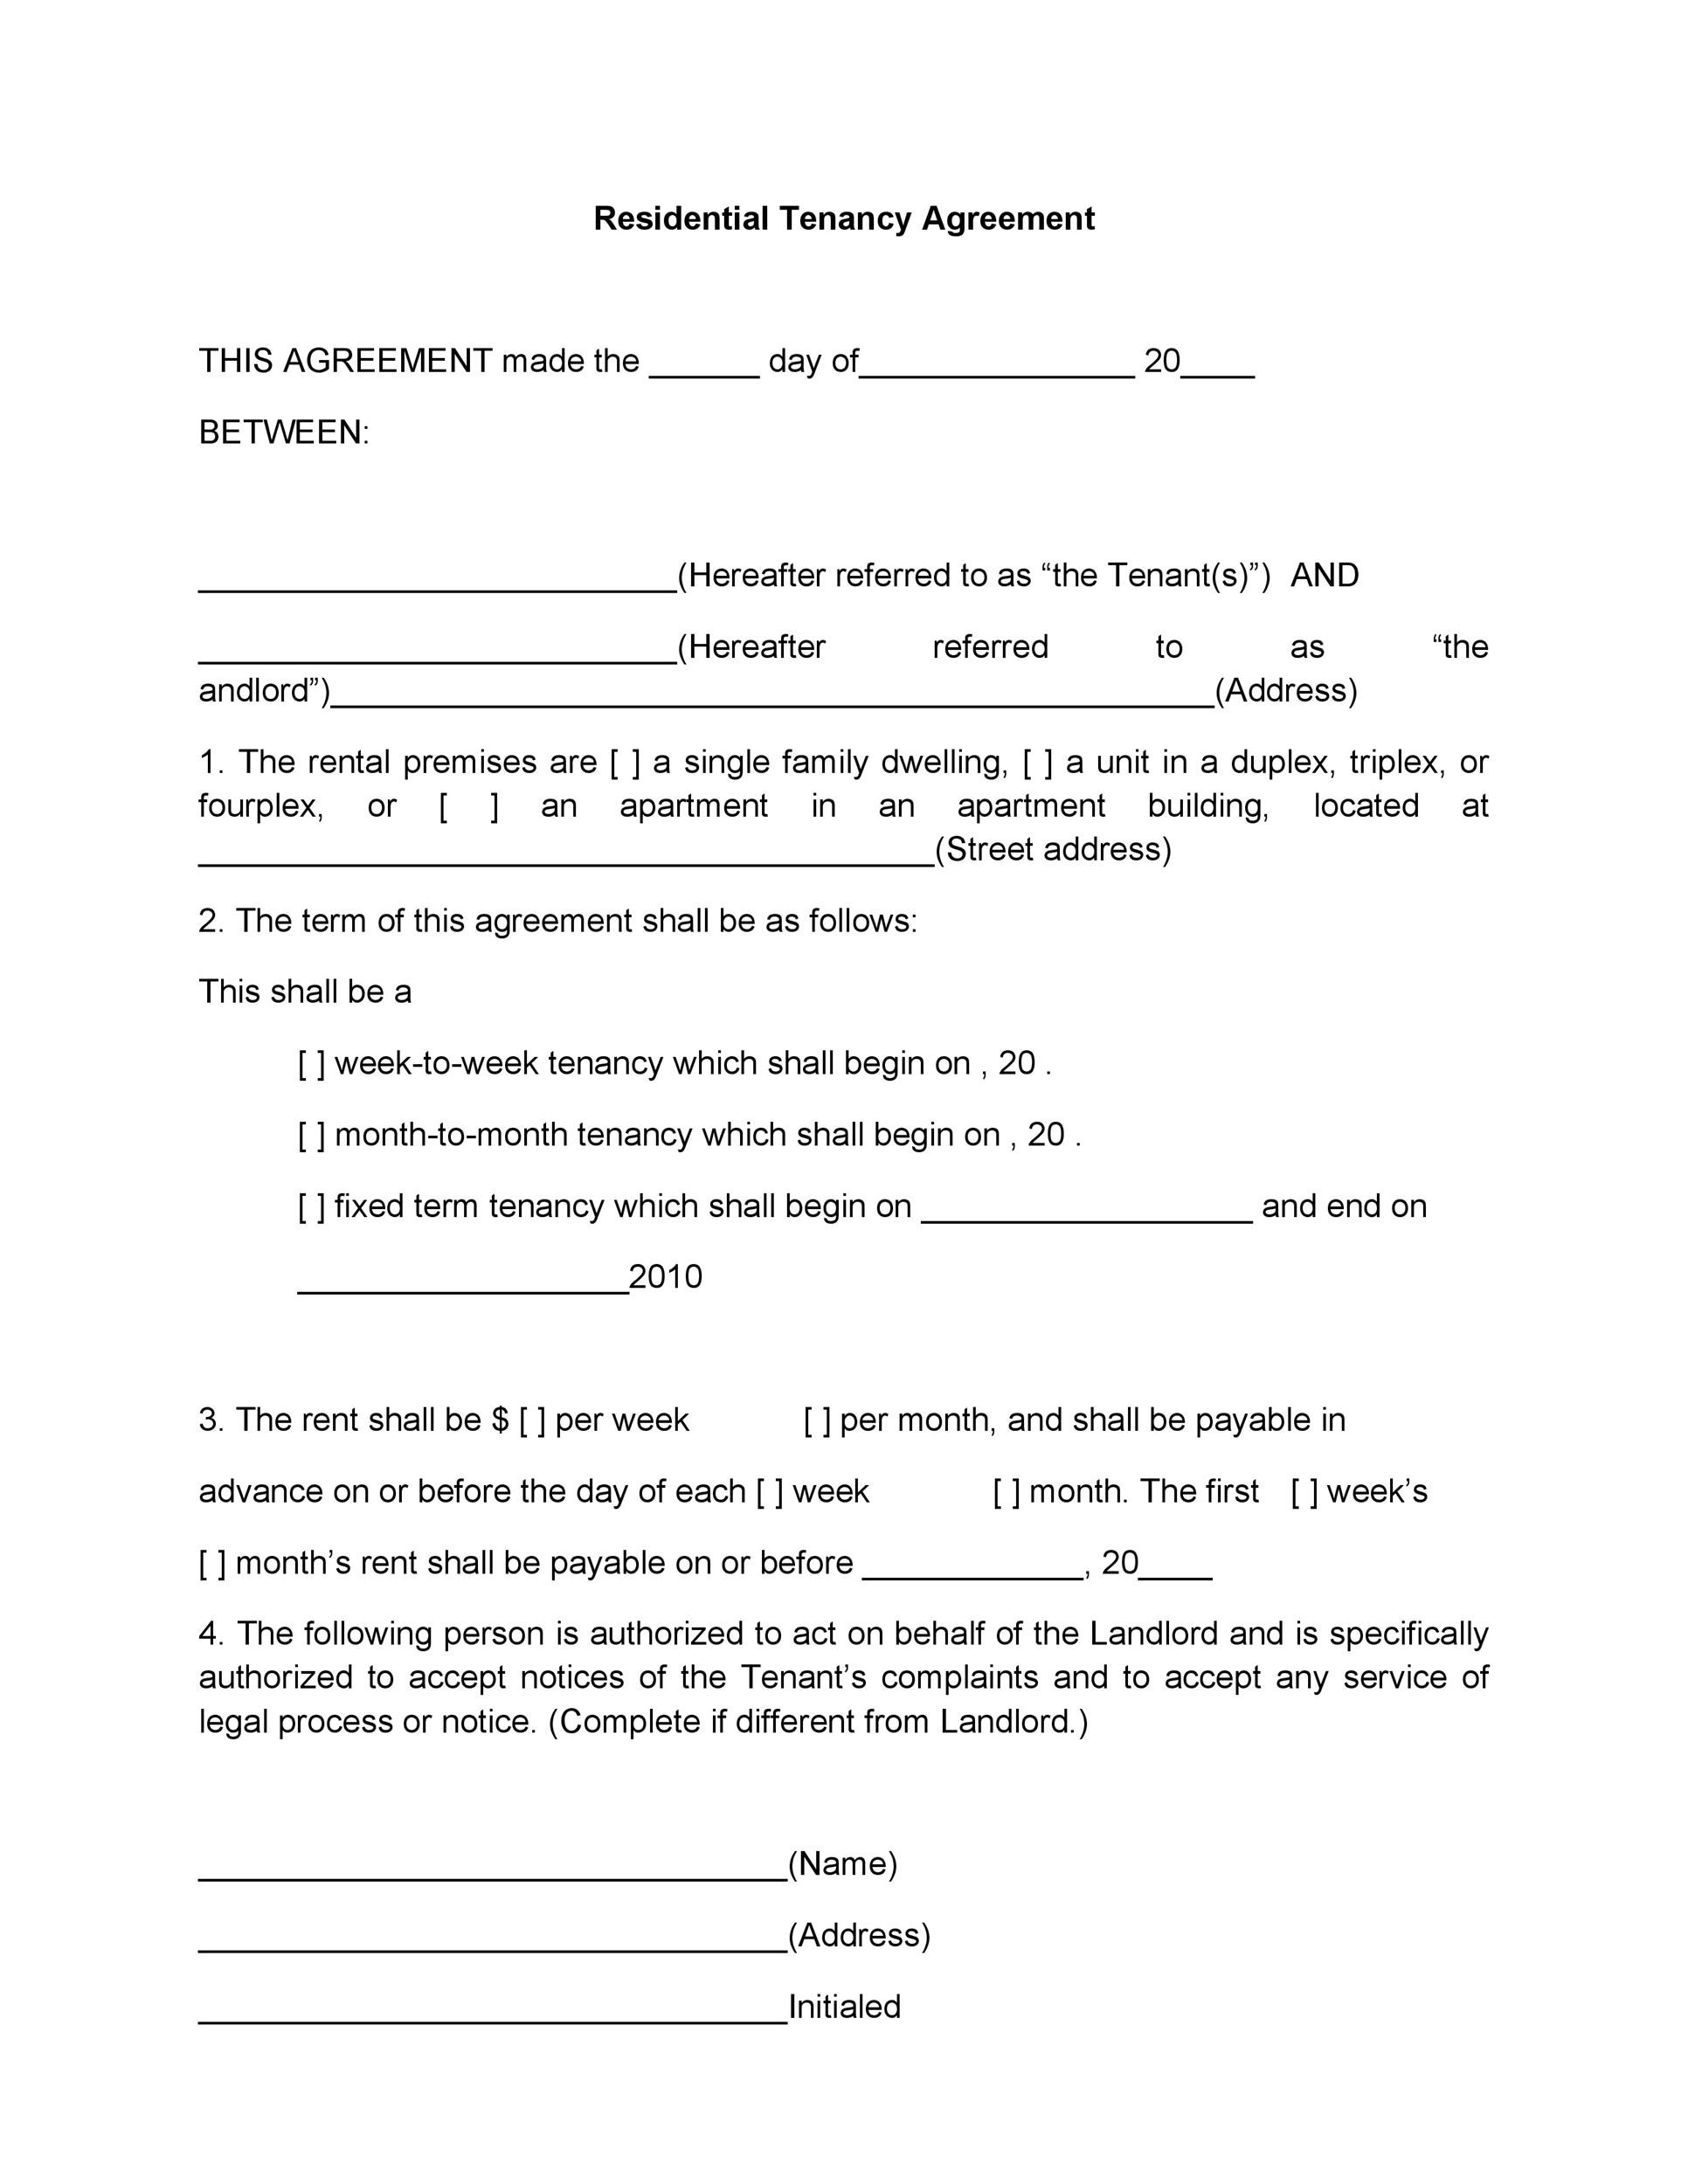 Apartment Building Agreement 42 rental application forms & lease agreement templates